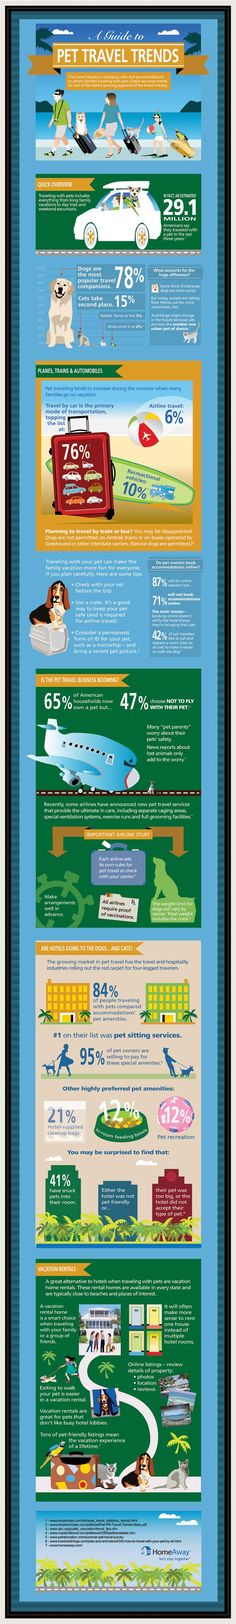 Pet Travel is a BIG BUSINESS! Did you know? 29.1 million Americans traveled with their pet within the last 3 years.  78% of pet travel companions are dogs , while 15% are cats.  Only 6% of vacationing pets travel by plane . Always a good idea to Microchip your pet before you leave.